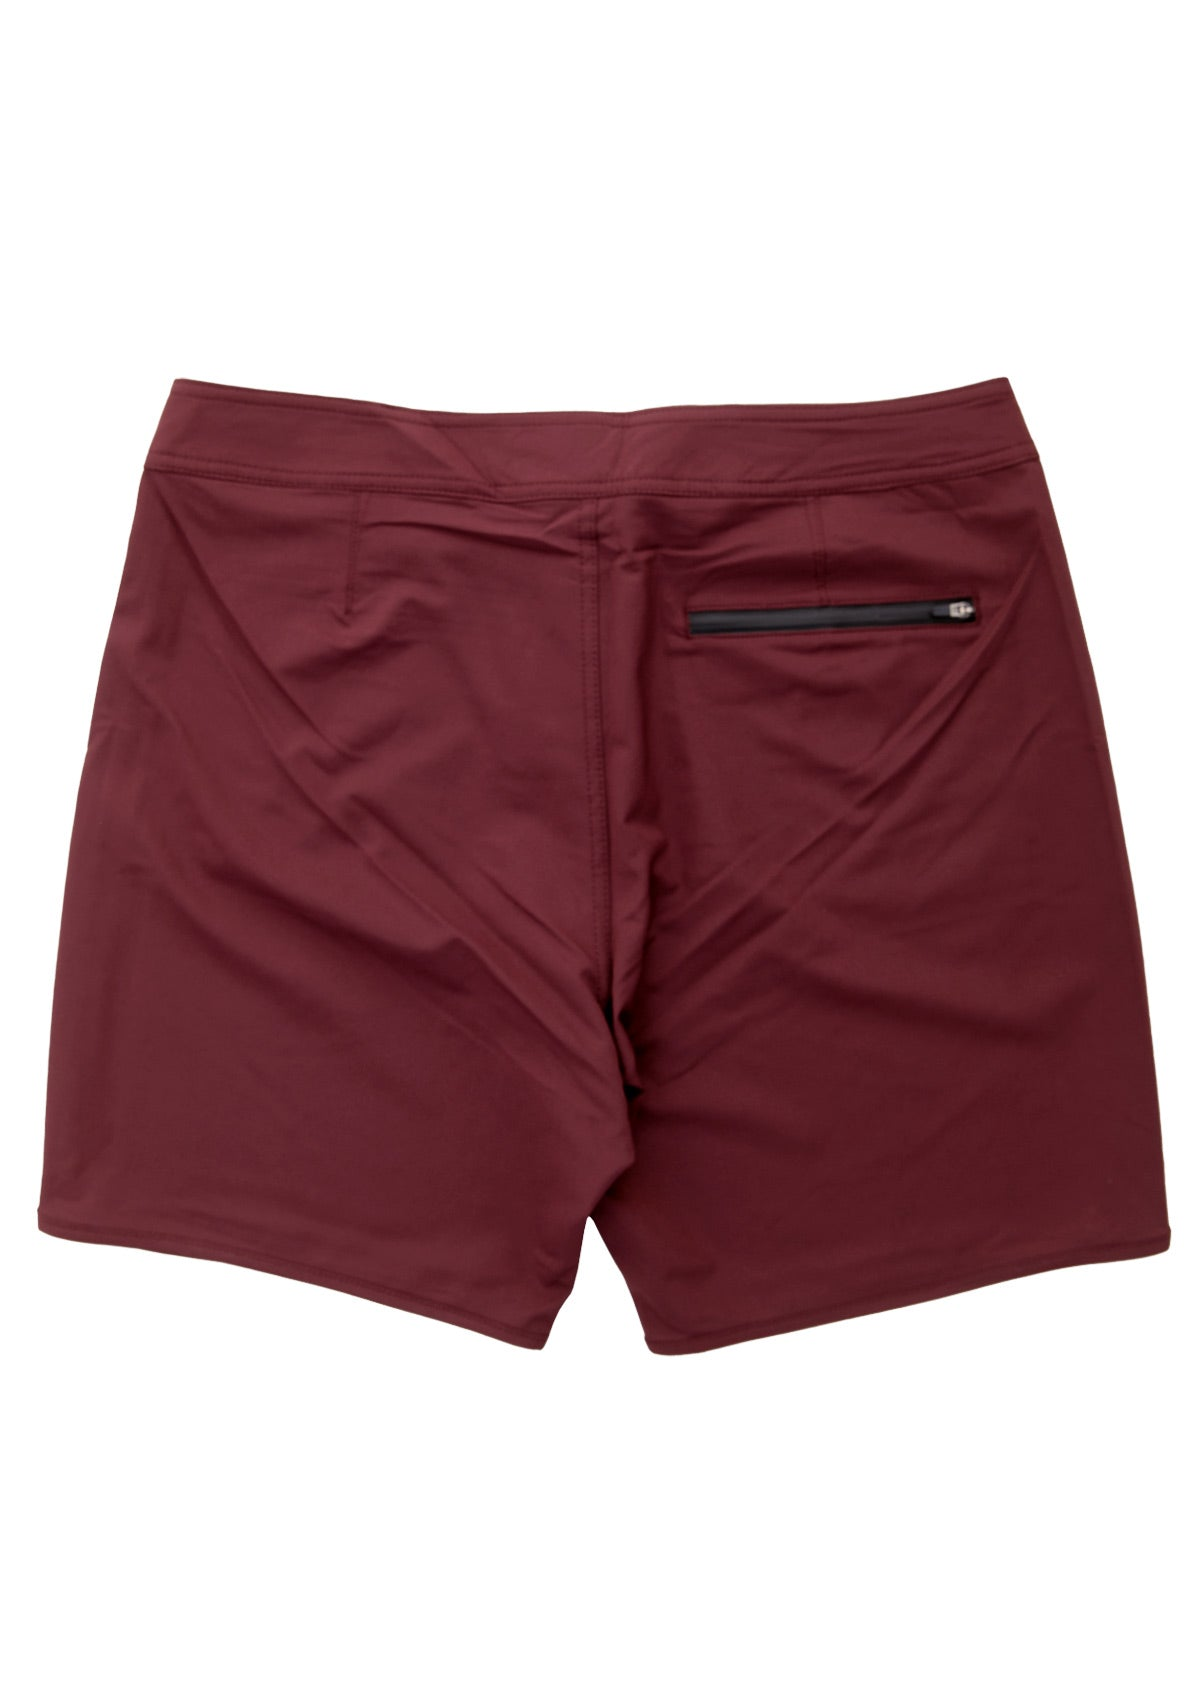 needessentials scallop mens surfing boardshorts non branded burgundy swimming